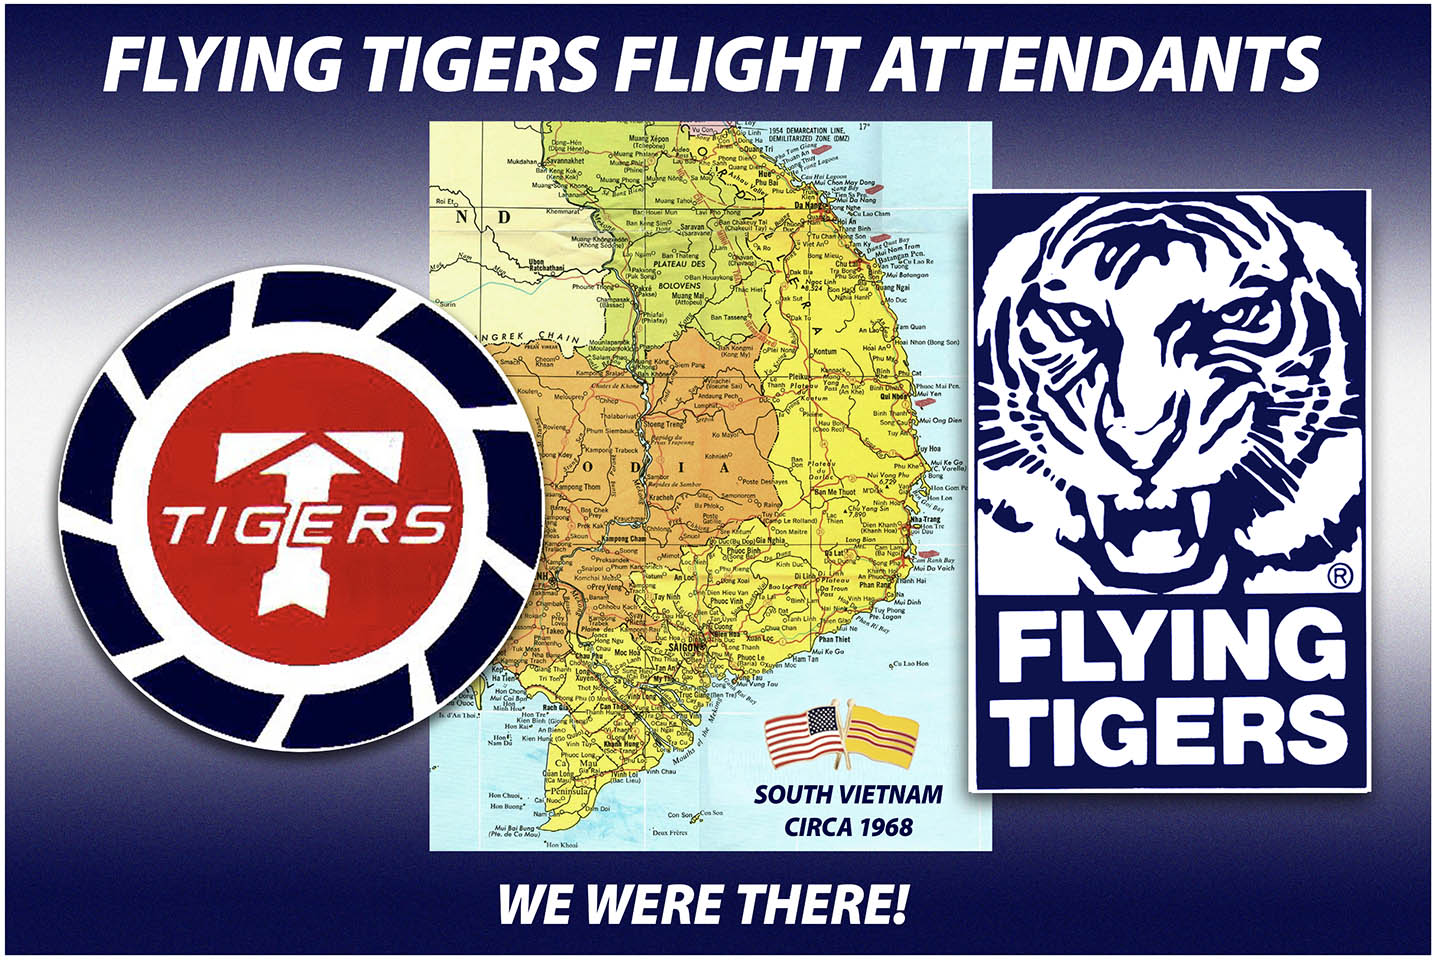 Flying tiger flight attendant - we were there